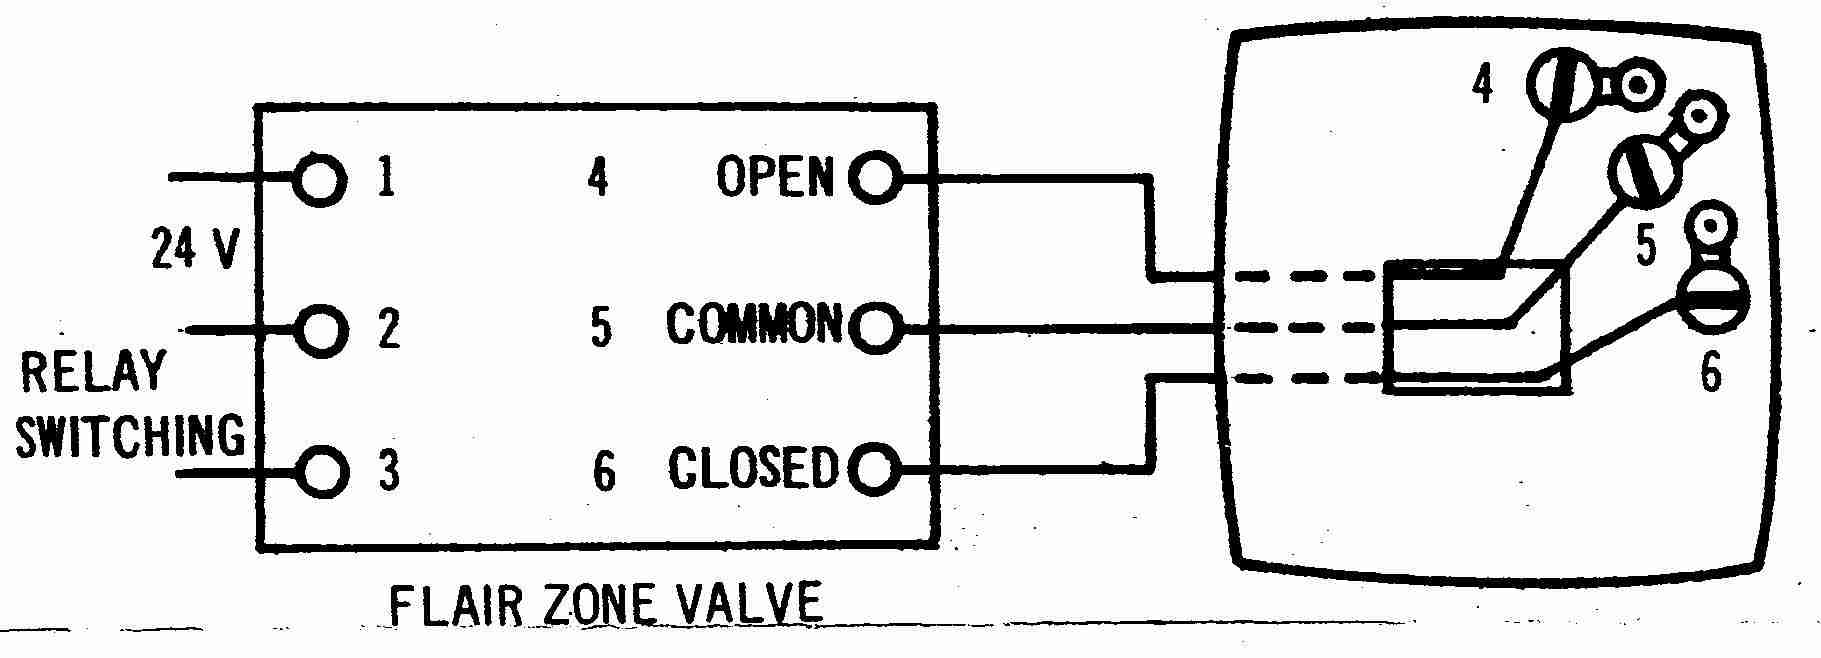 Flair3w_001_DJFc2 zone valve wiring installation & instructions guide to heating honeywell zone valve wiring at n-0.co